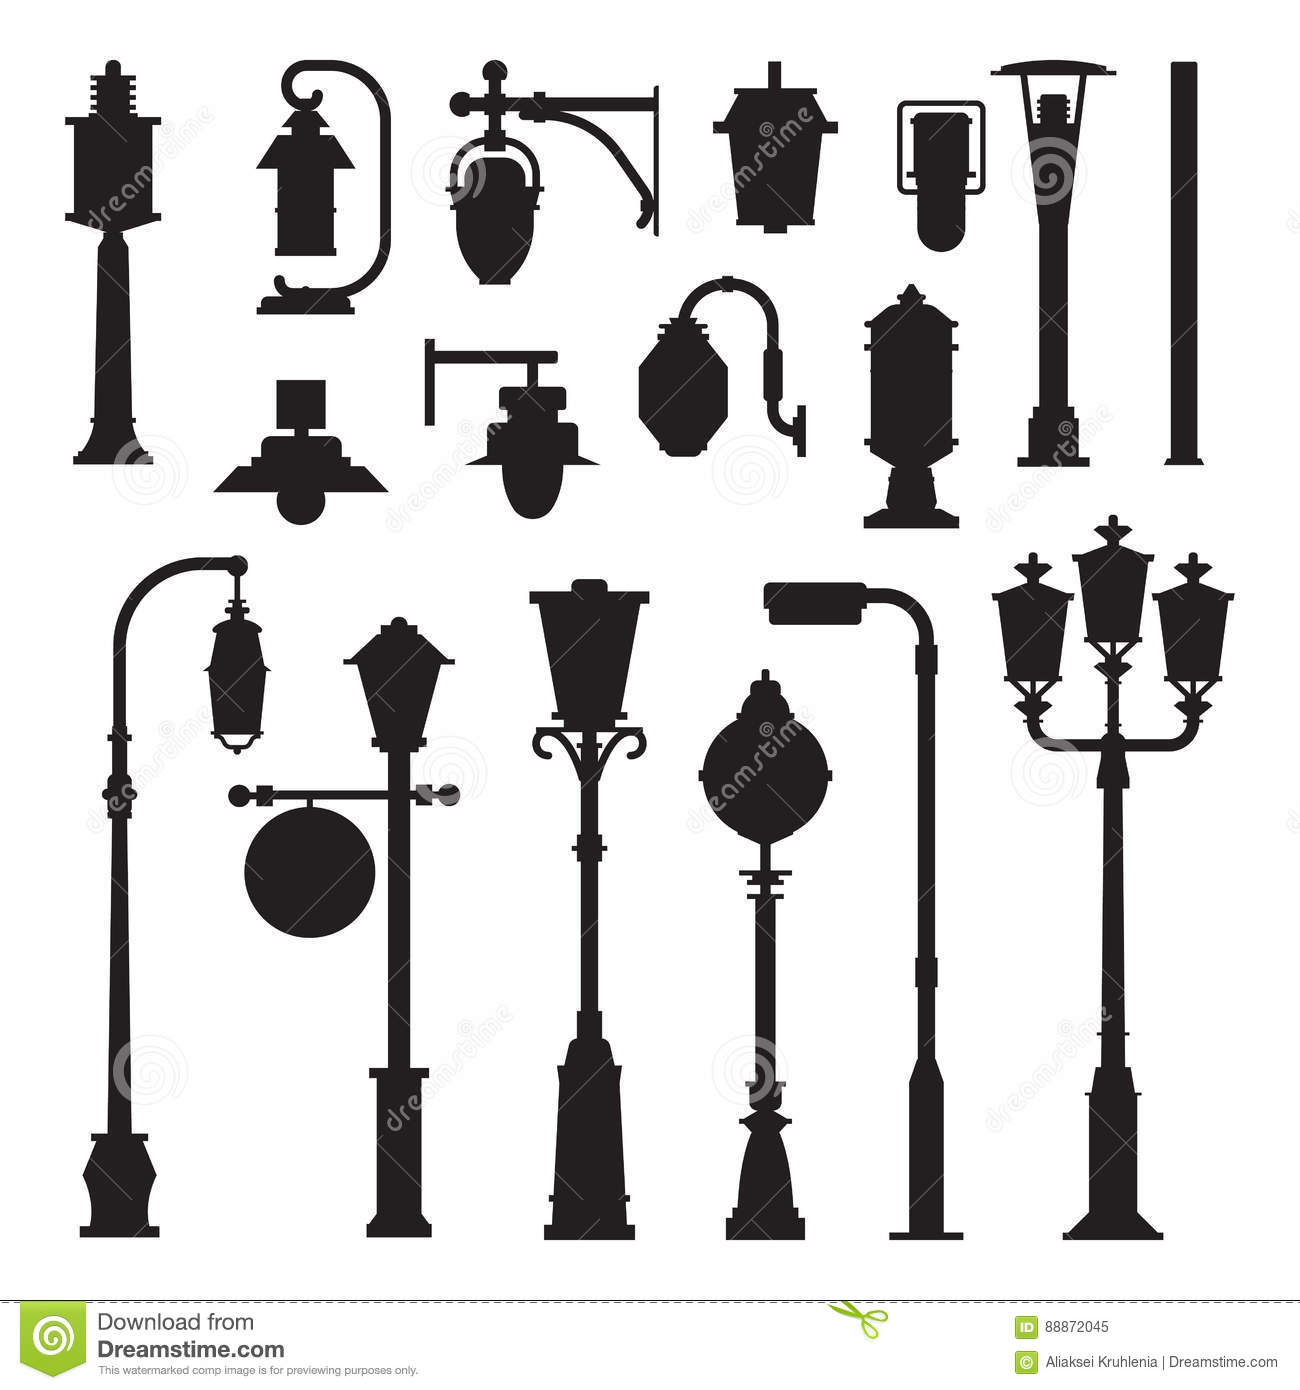 Street Lamps and Lamp Posts Icons